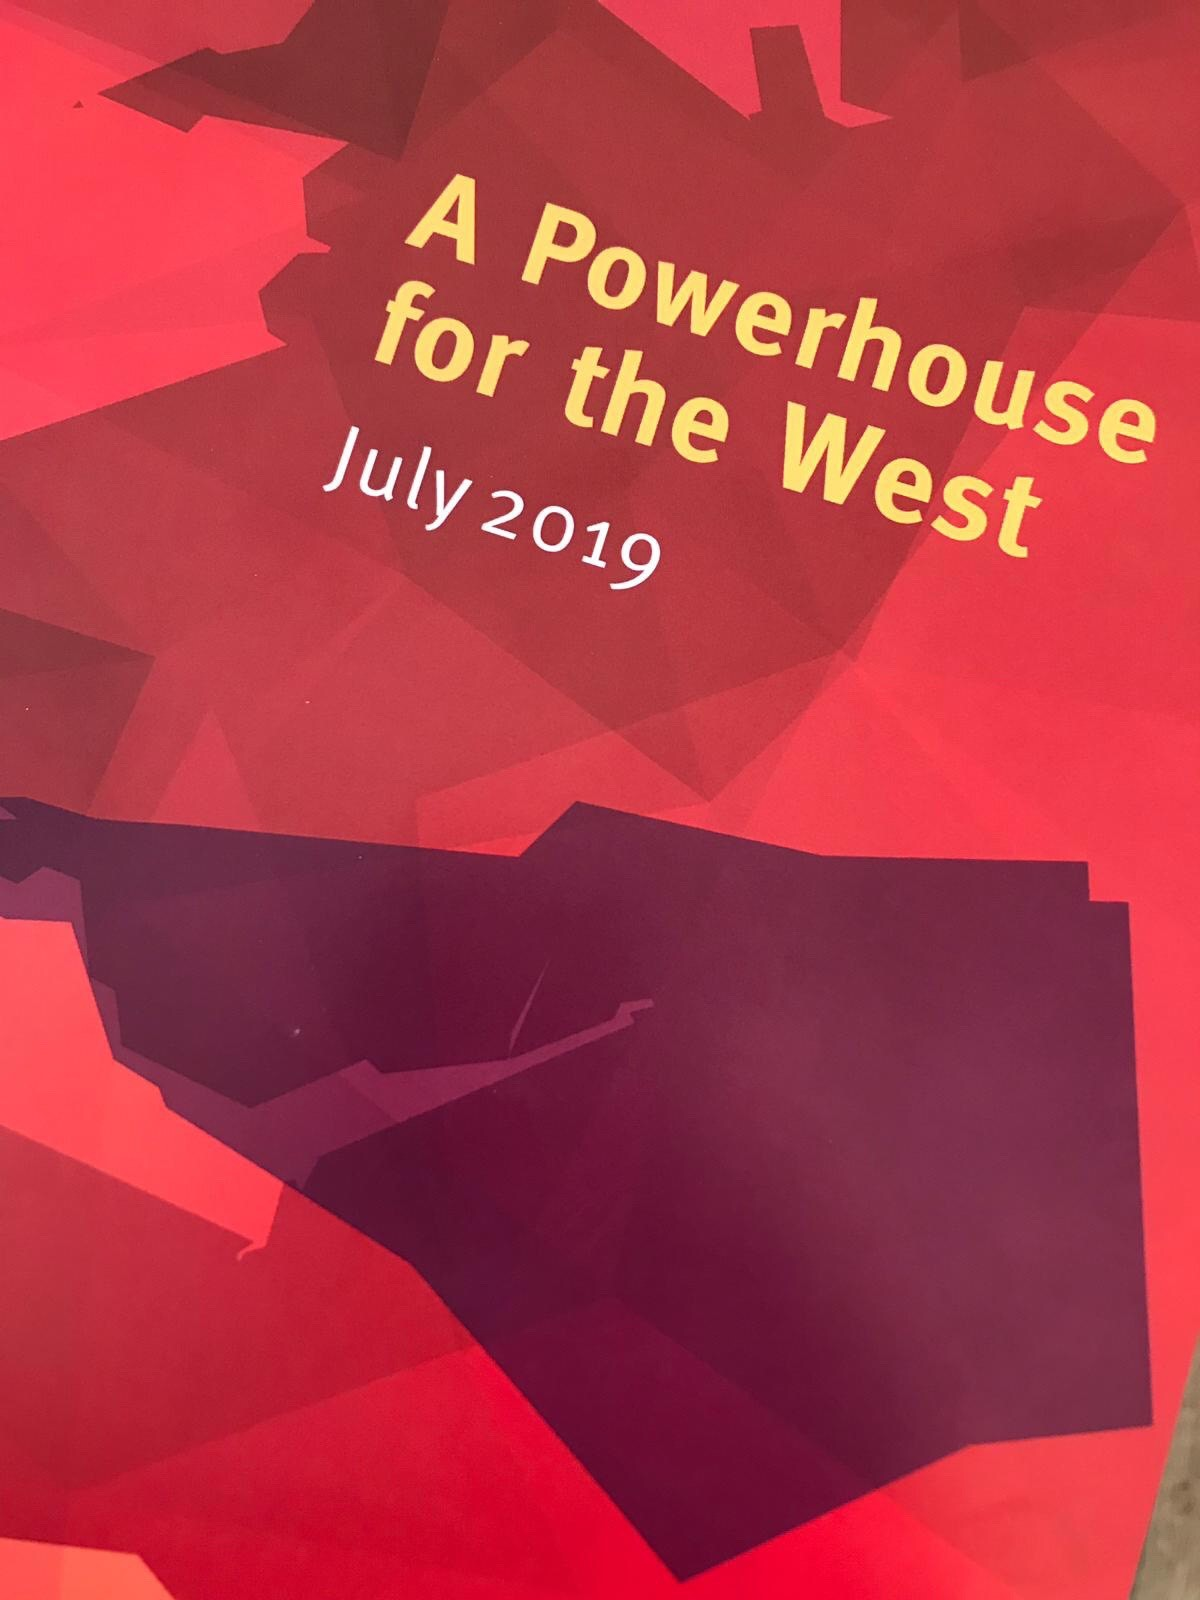 The Western Powerhouse: the missing piece of the economic puzzle